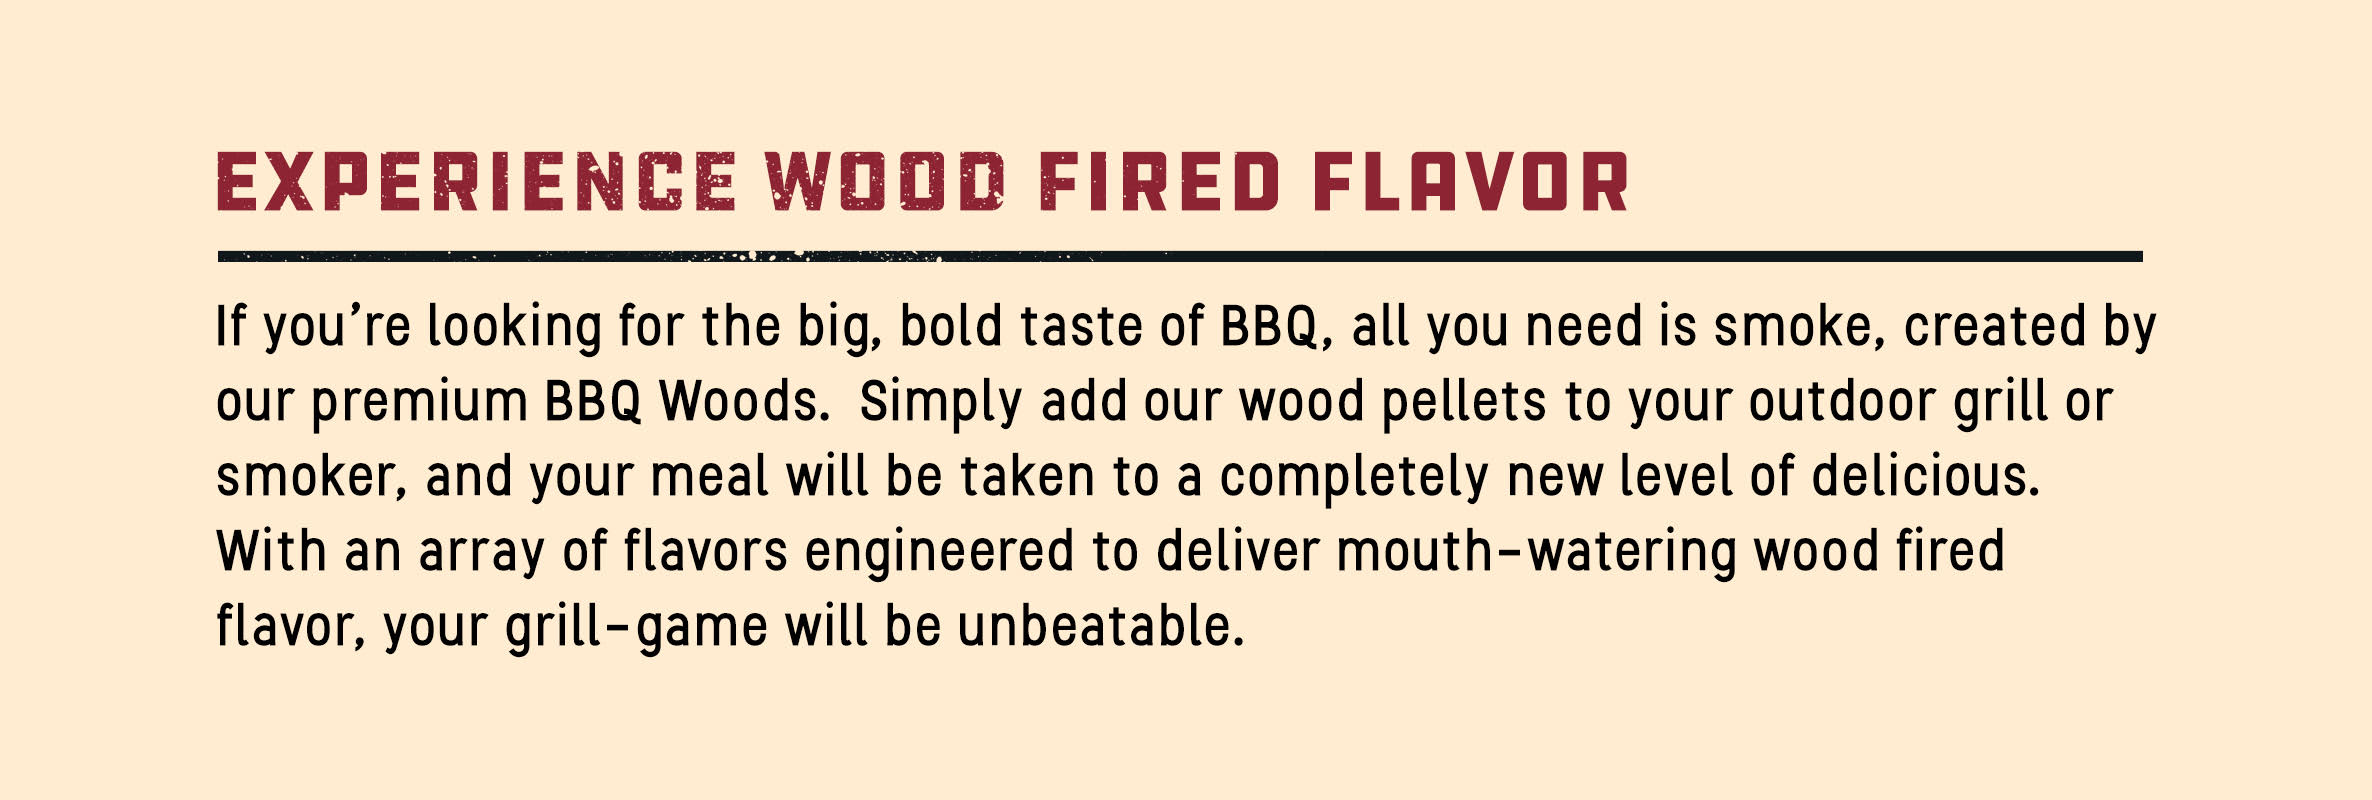 Wood Fired Flavor